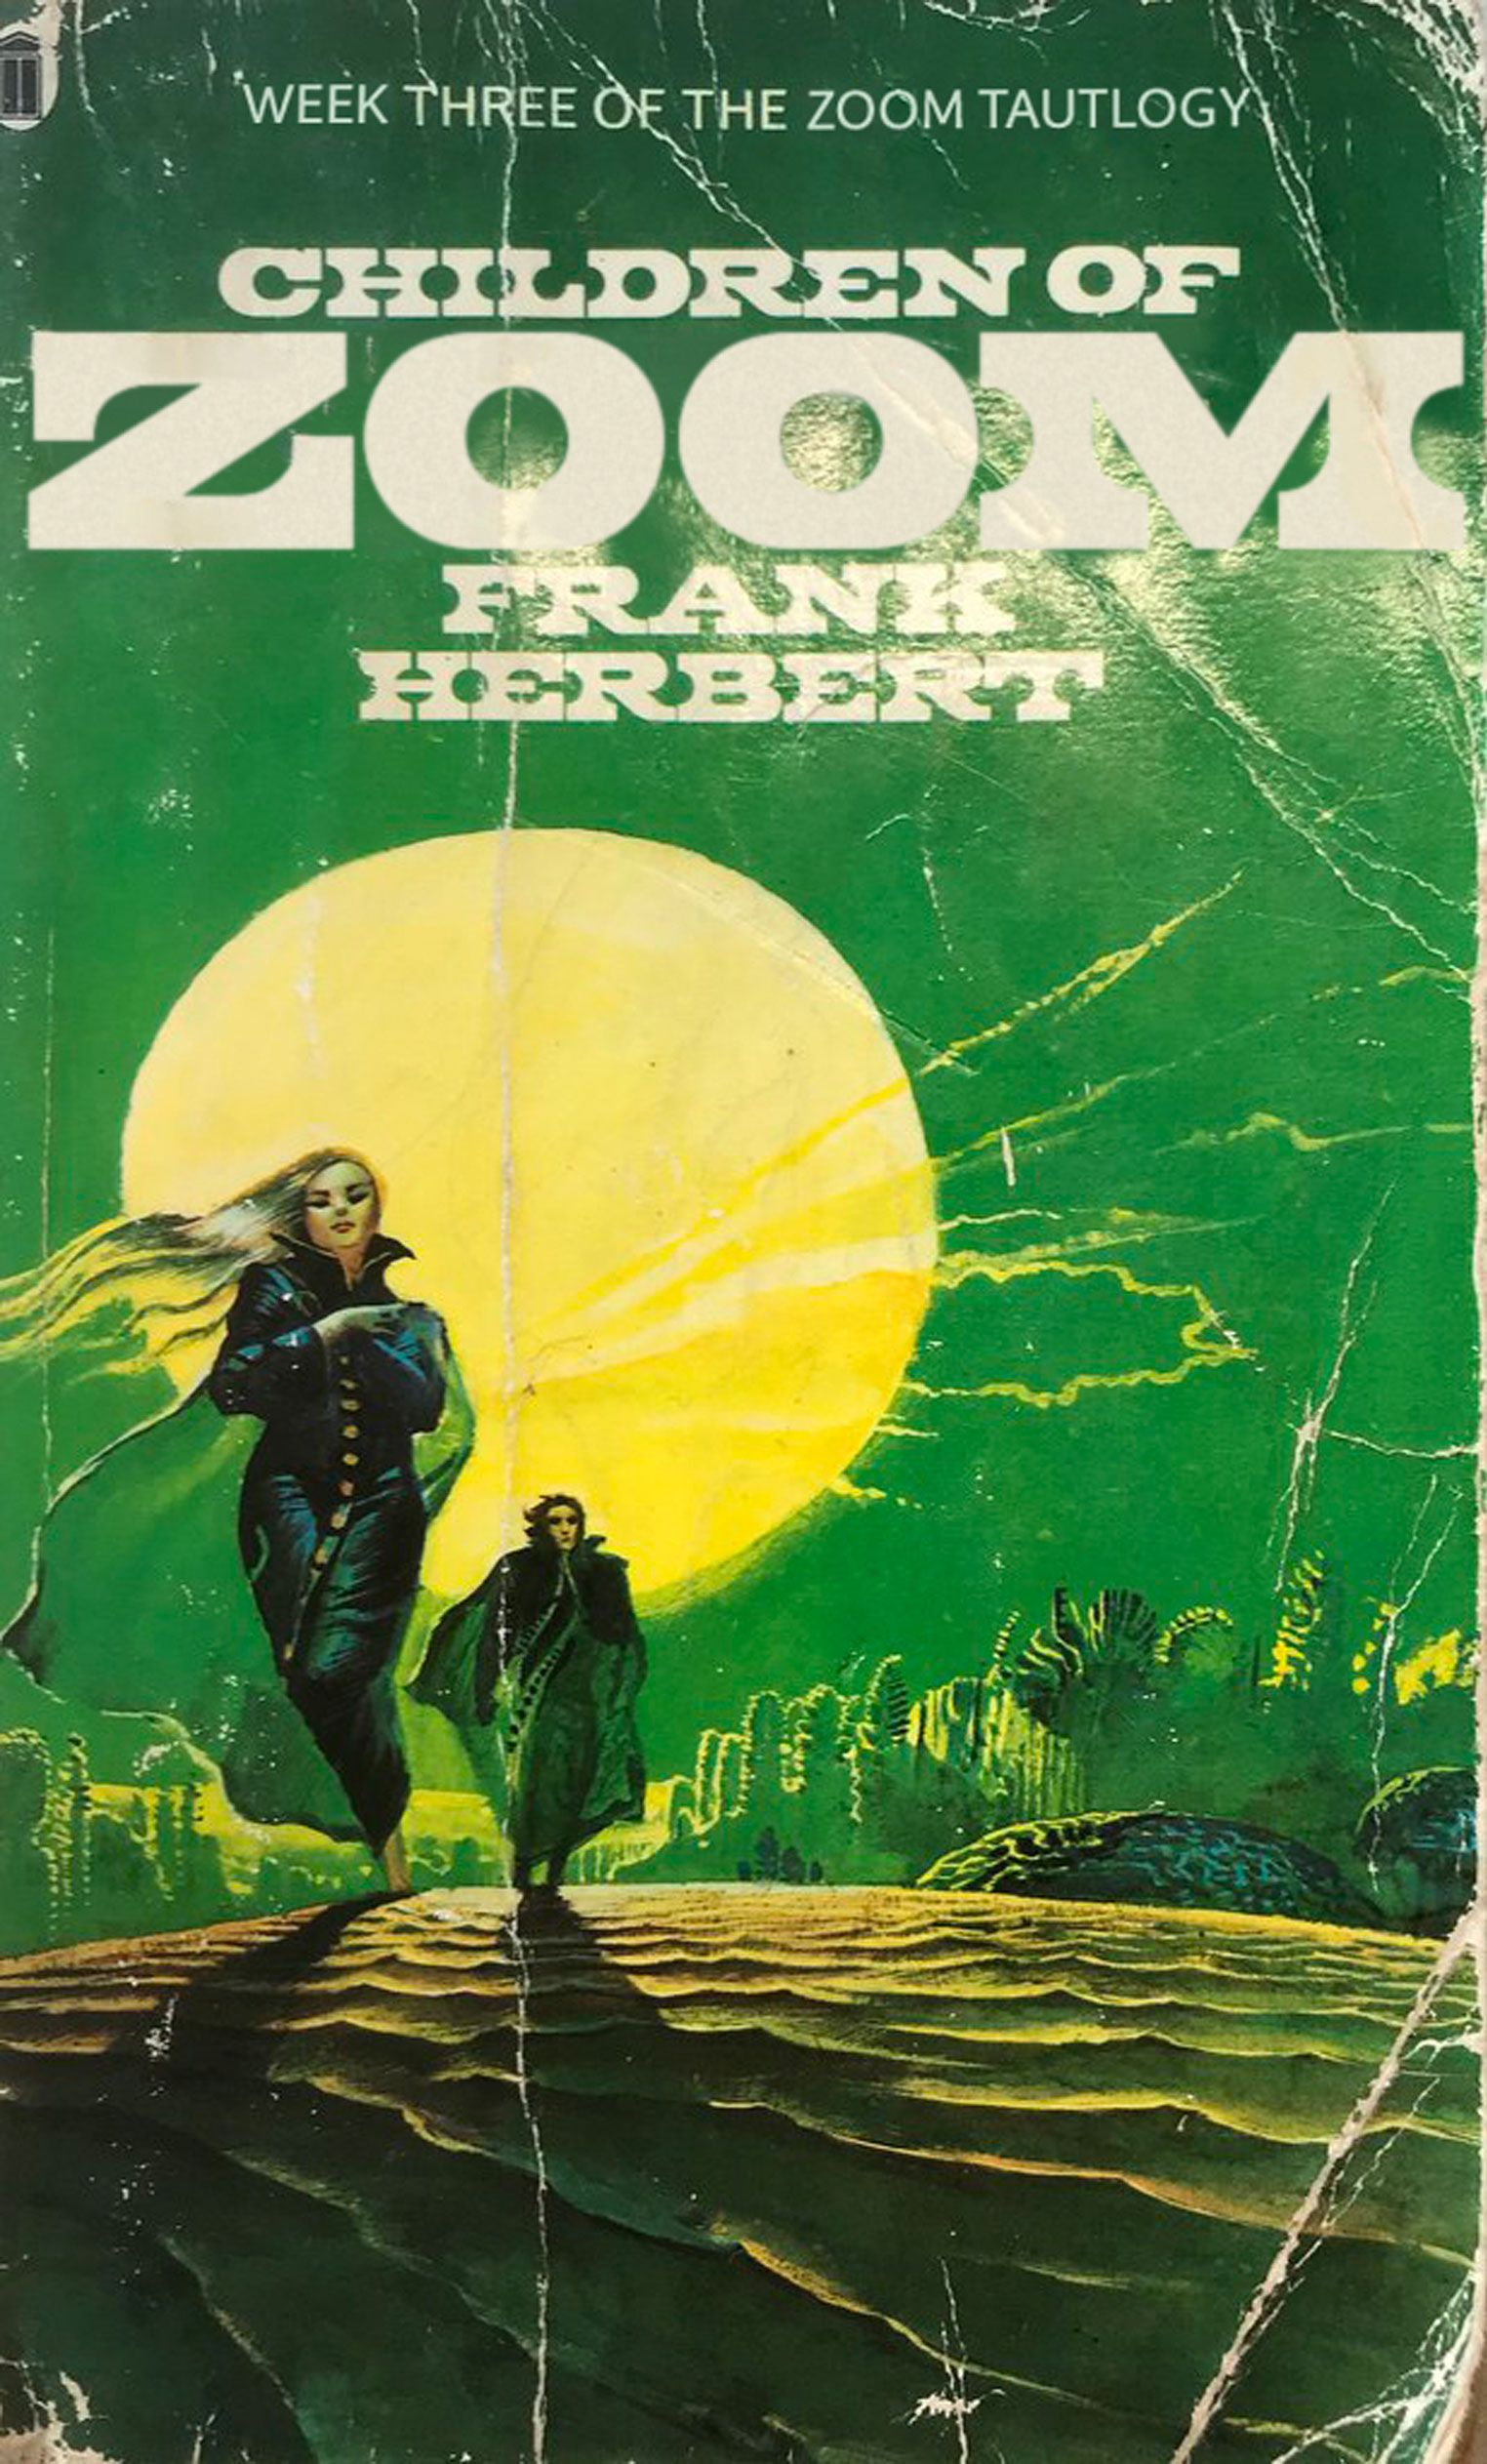 Children of Zoom (Children of Dune, by Frank Herbert)